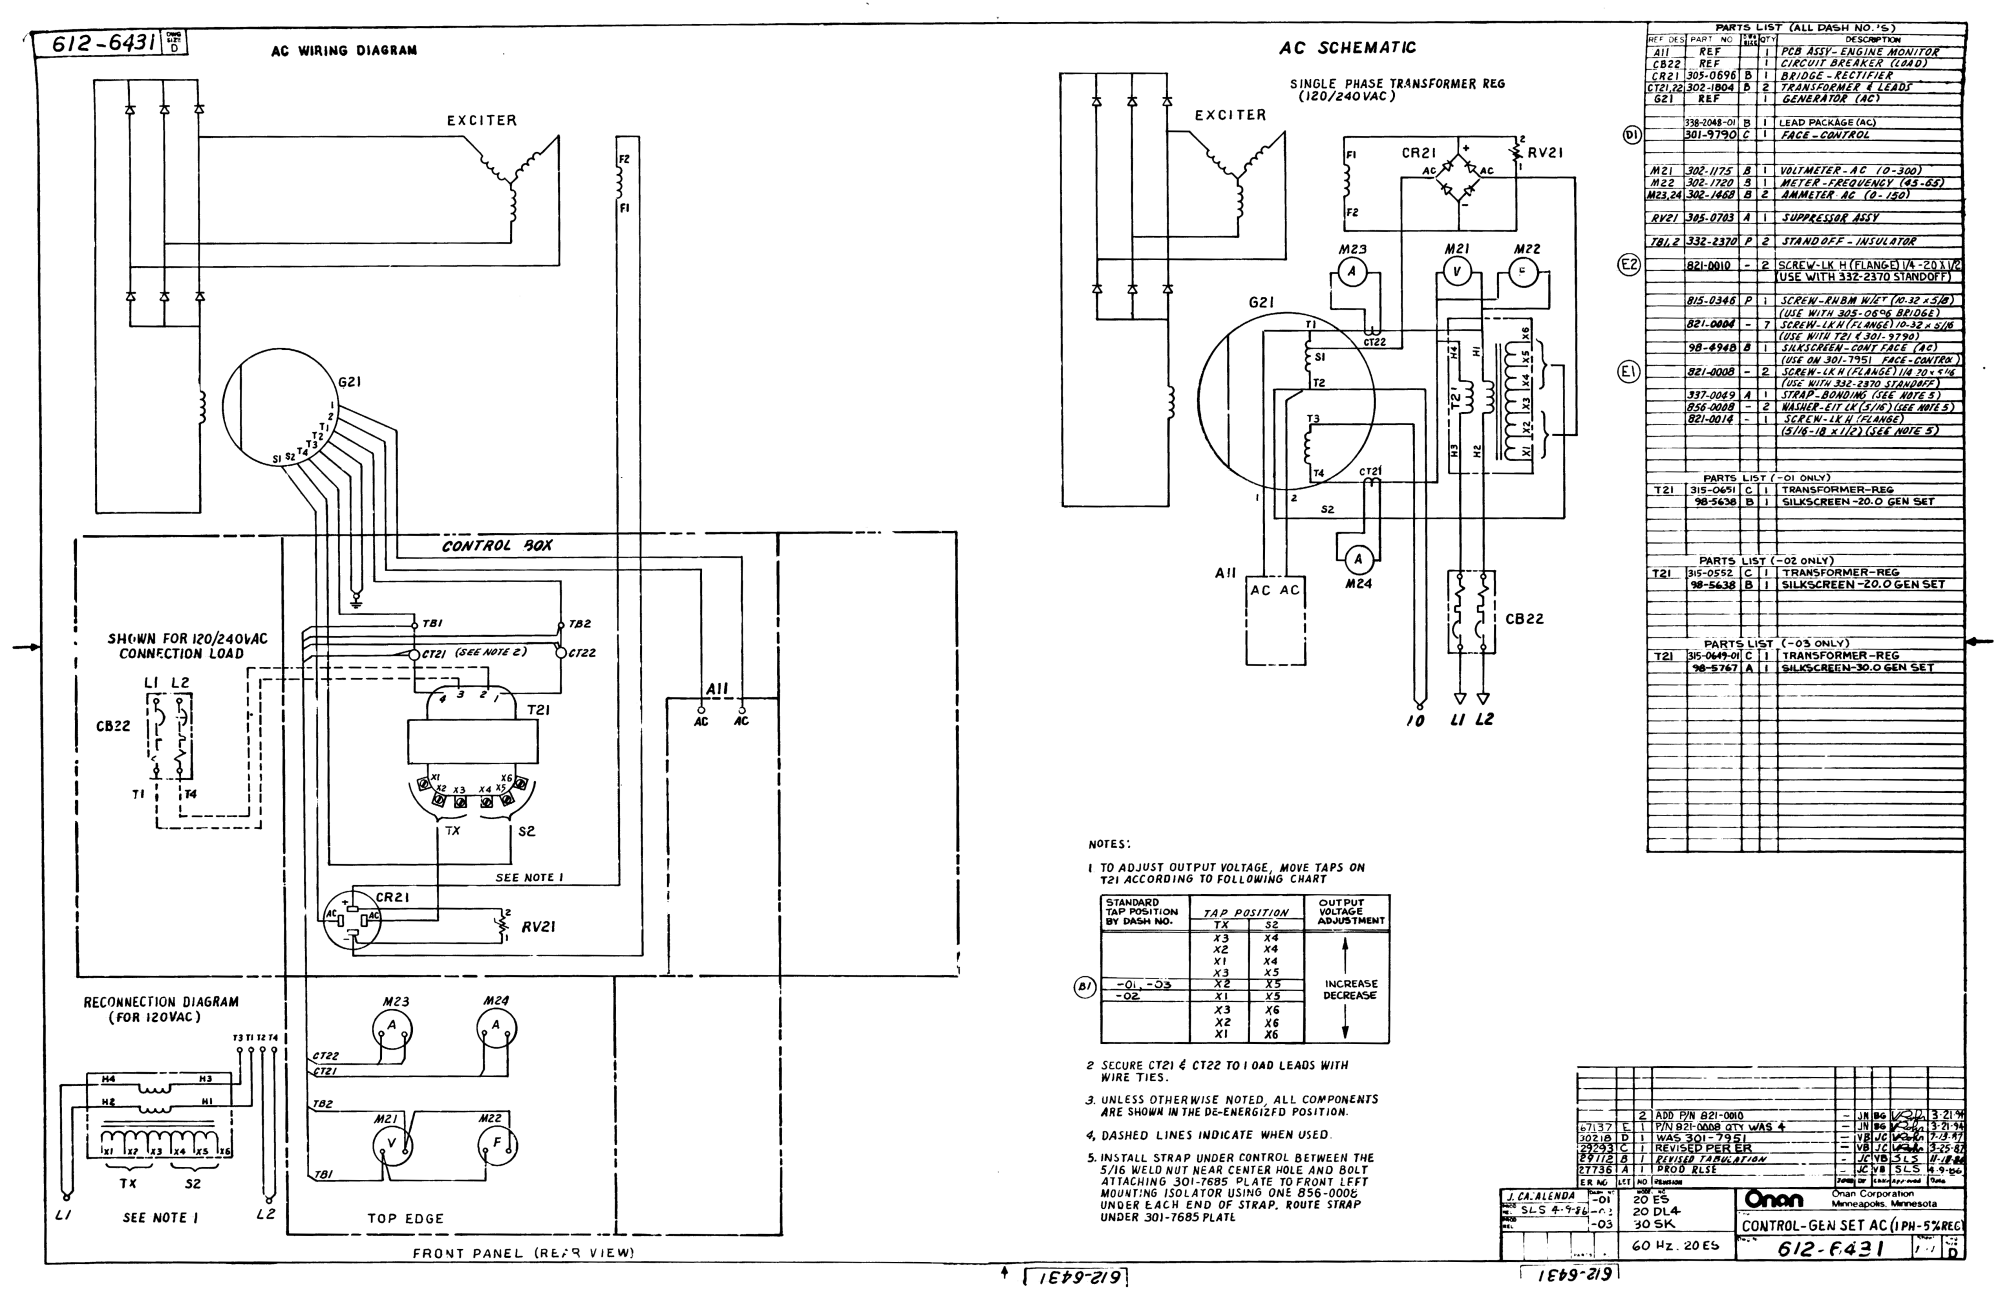 hight resolution of onan 6500 generator wiring diagram free pictu wiring library rh 48 akszer eu old onan generators wiring diagrams onan rv generator wiring diagram